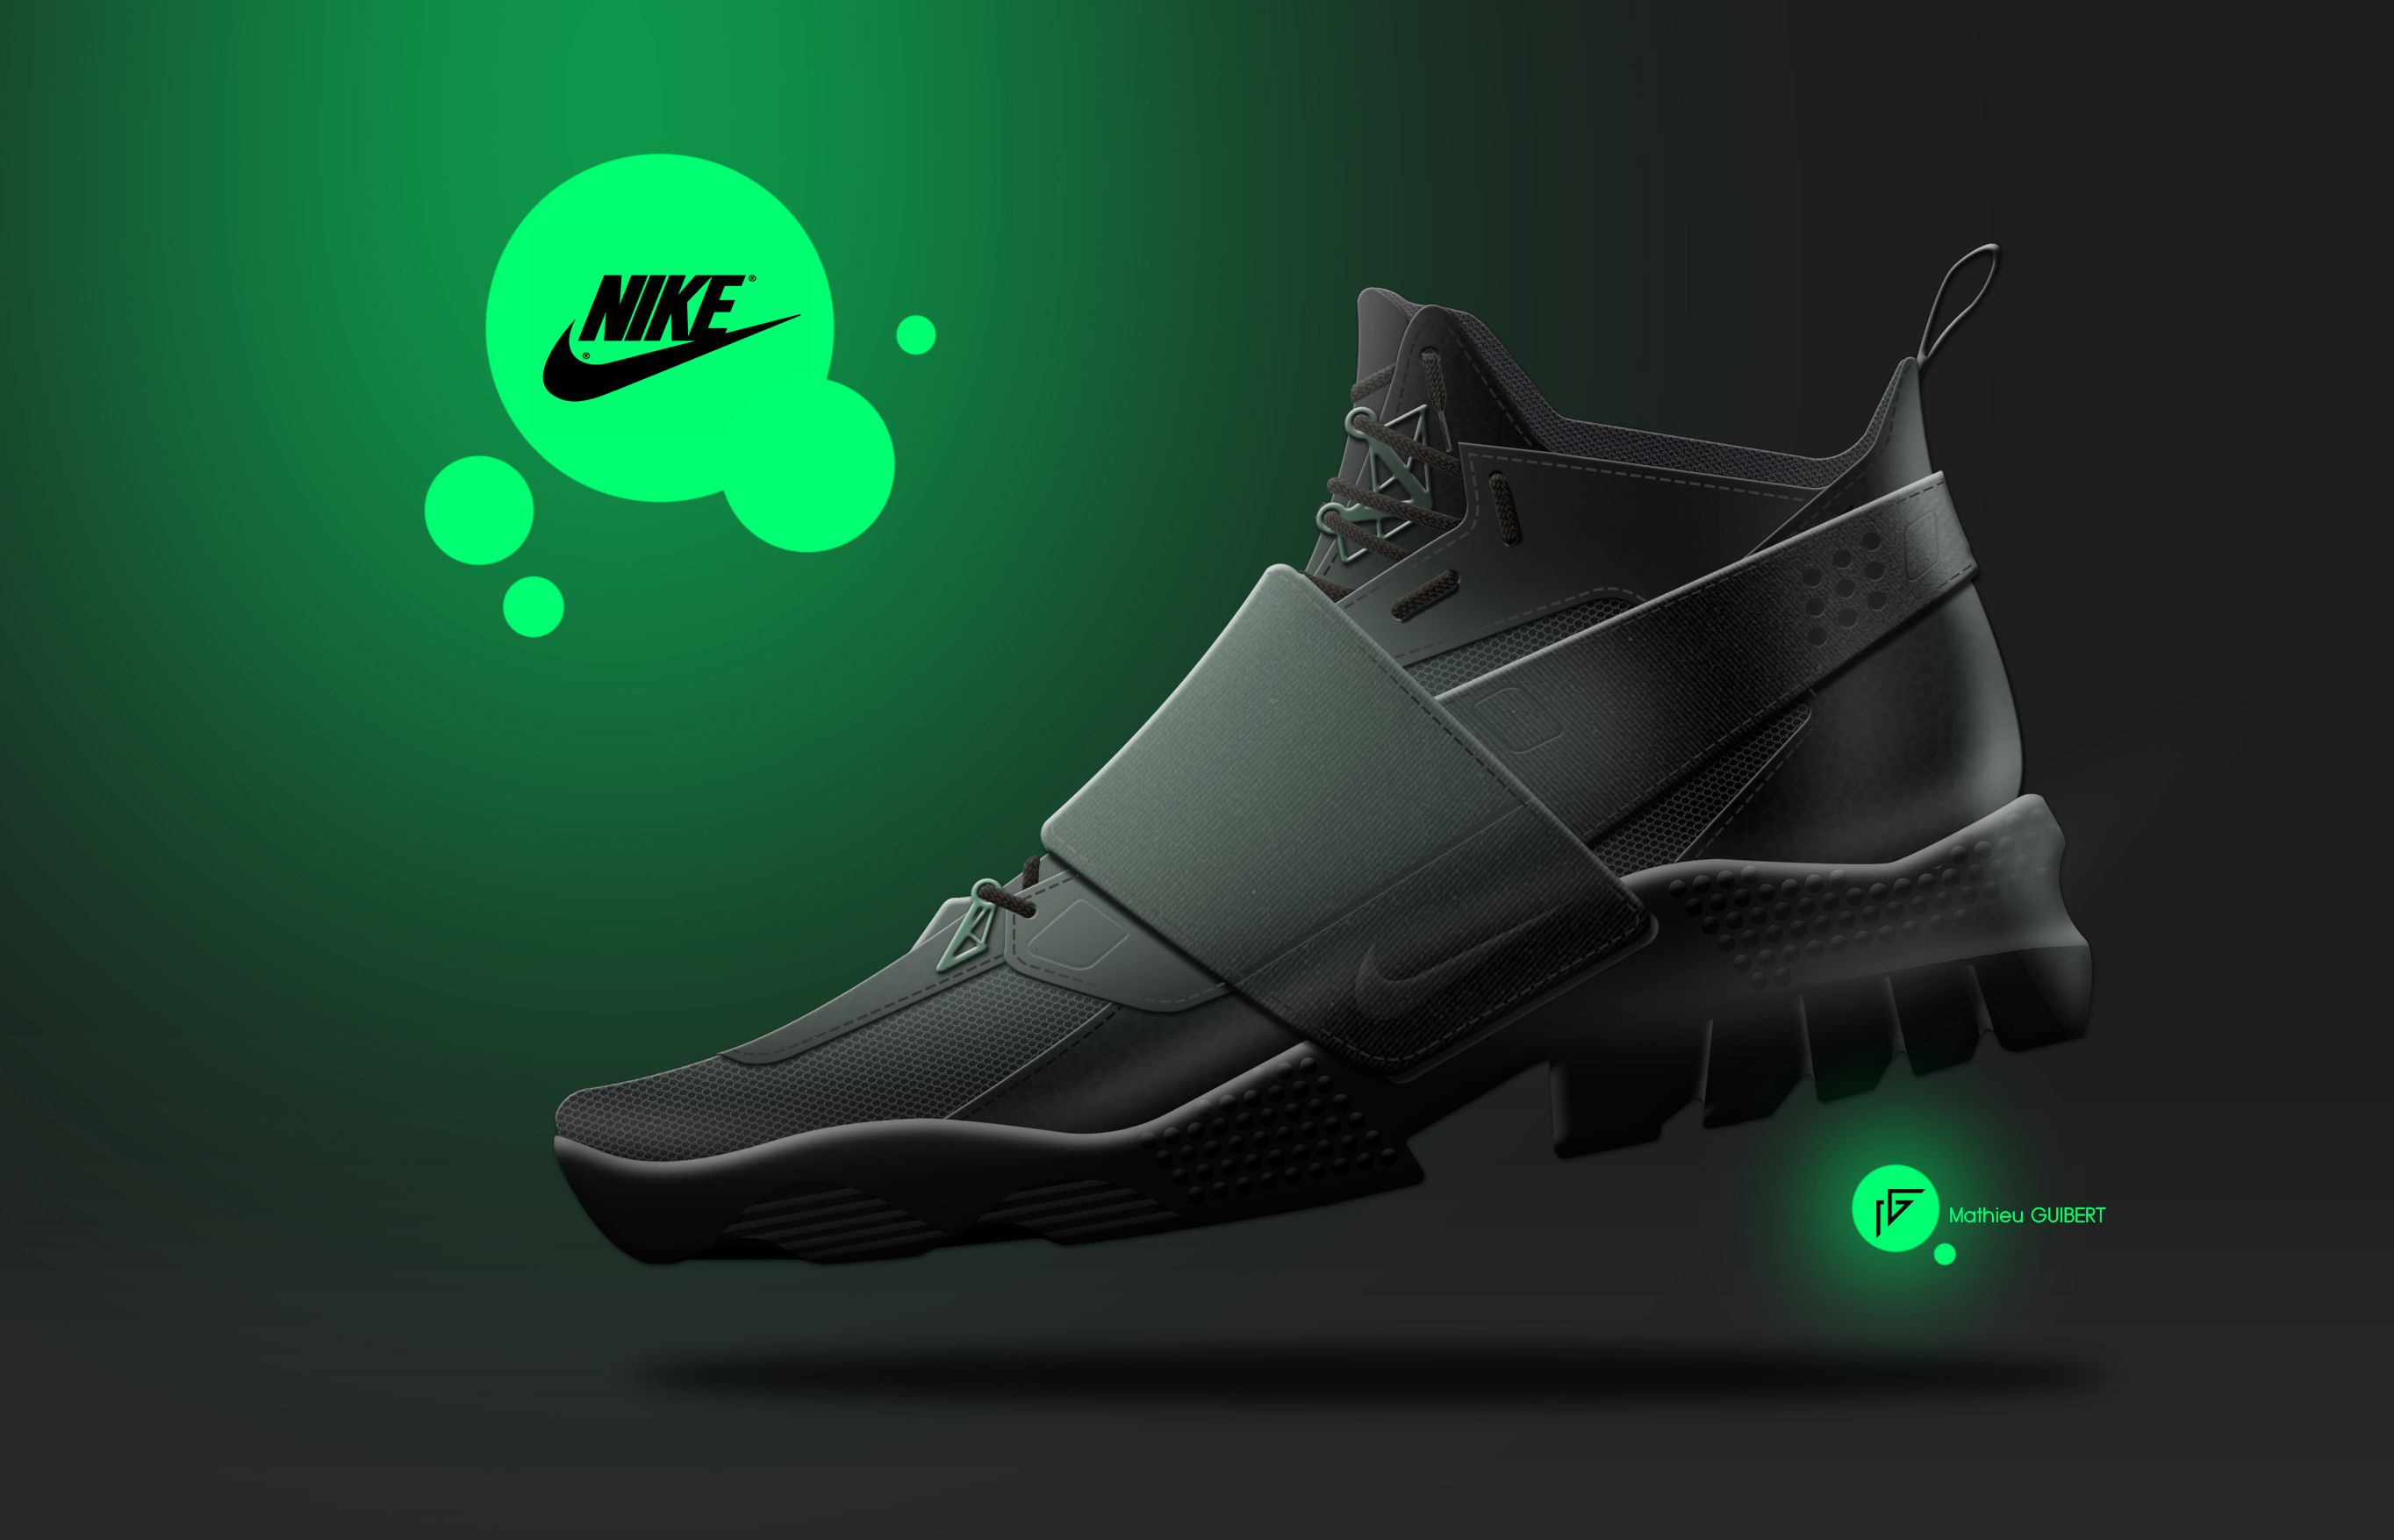 MATHIEU GUIBERT // NIKE SHOES CONCEPT // shoes - sketch - shoedesign -  footweardesign